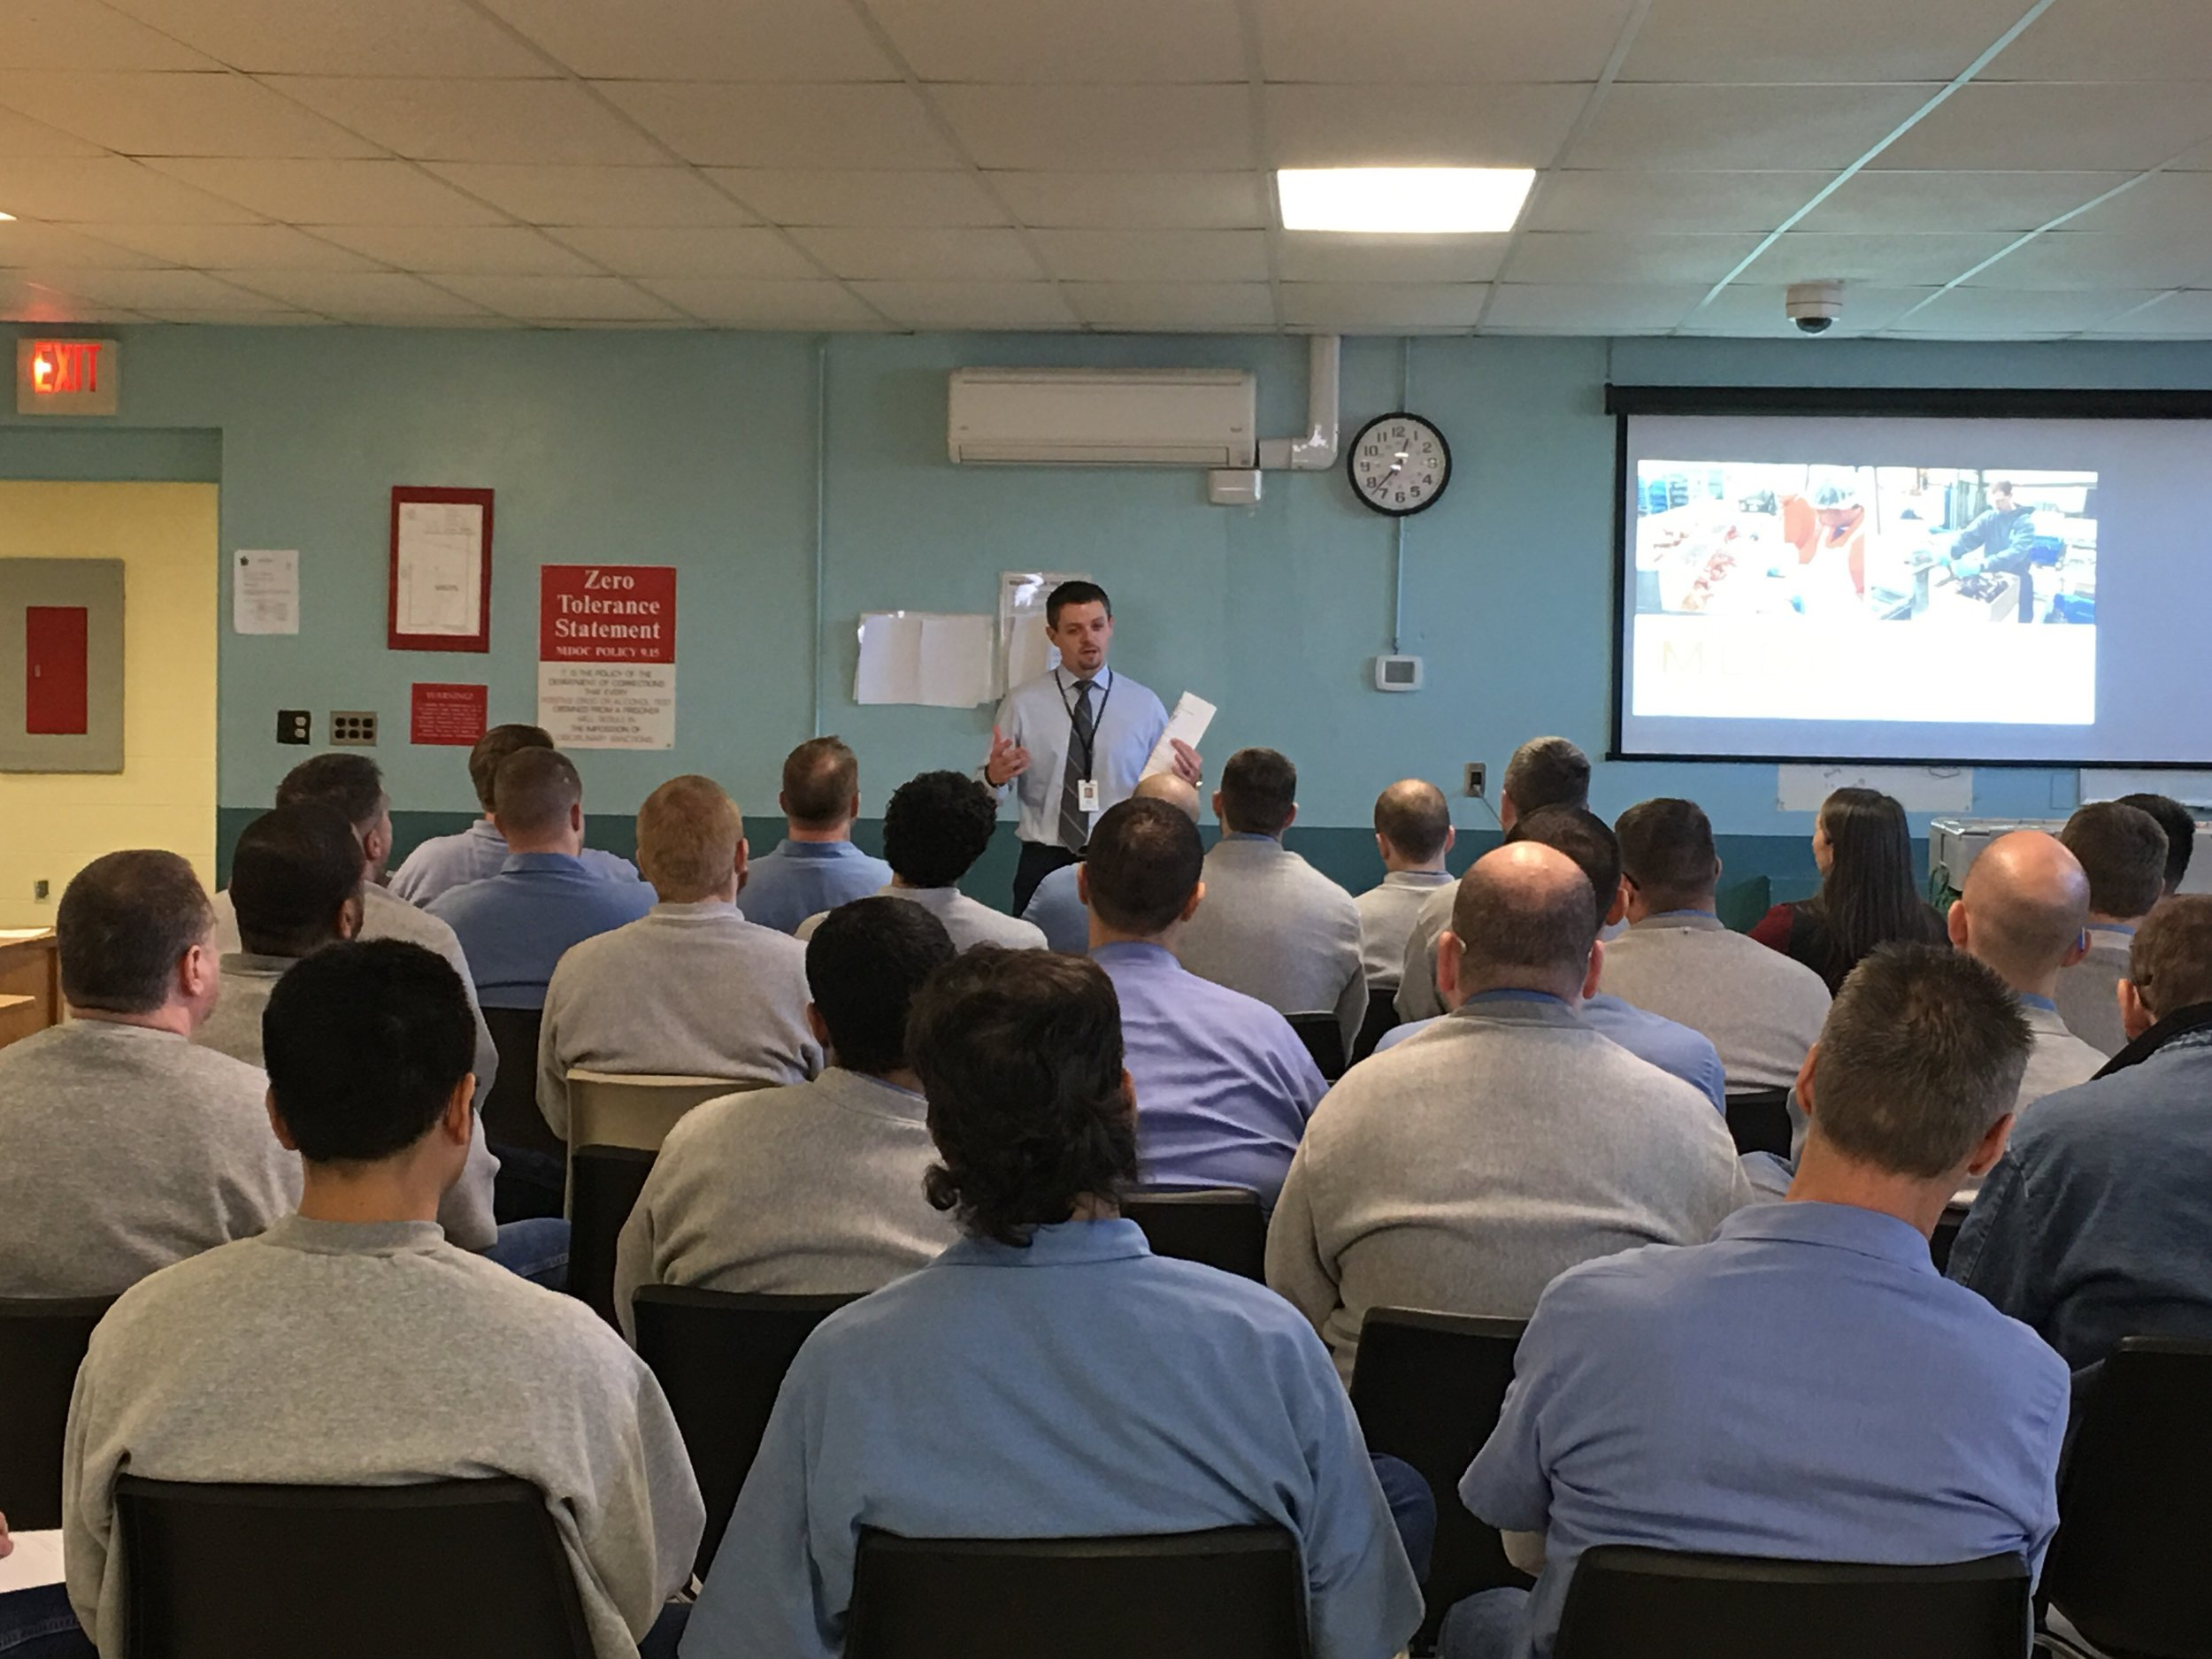 Maine Department of Corrections Deputy Commissioner Ryan Thornell welcomes a group of offenders on December 7 at the introductory training session. Photo by Madelyn Kearns for Seafood Source.